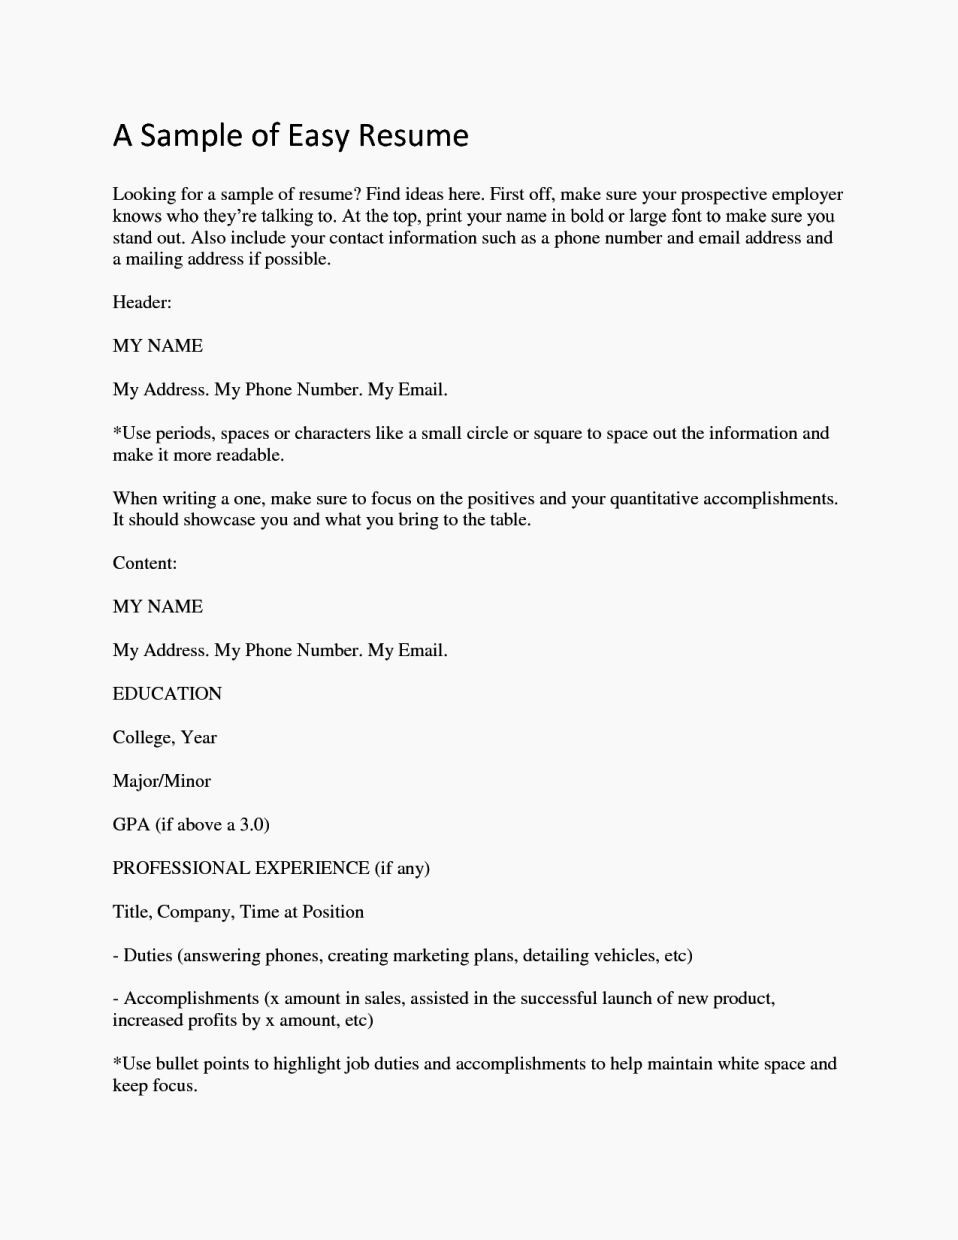 Simple Resume Examples for Jobs New Easy Job Resume Samples Resume Template